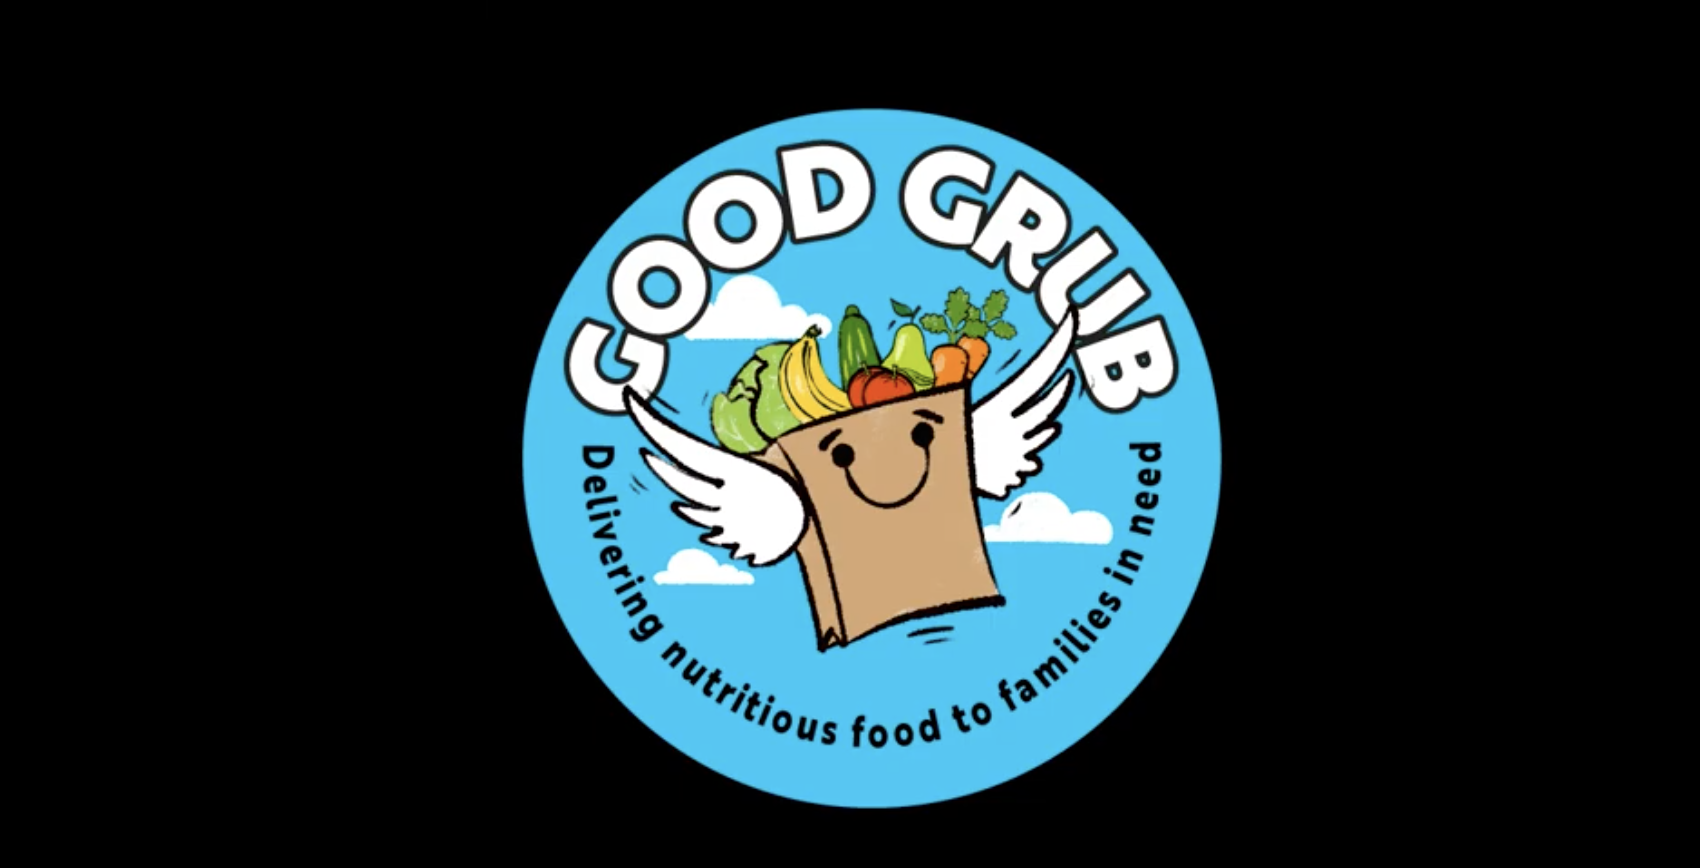 God Grub Initiative